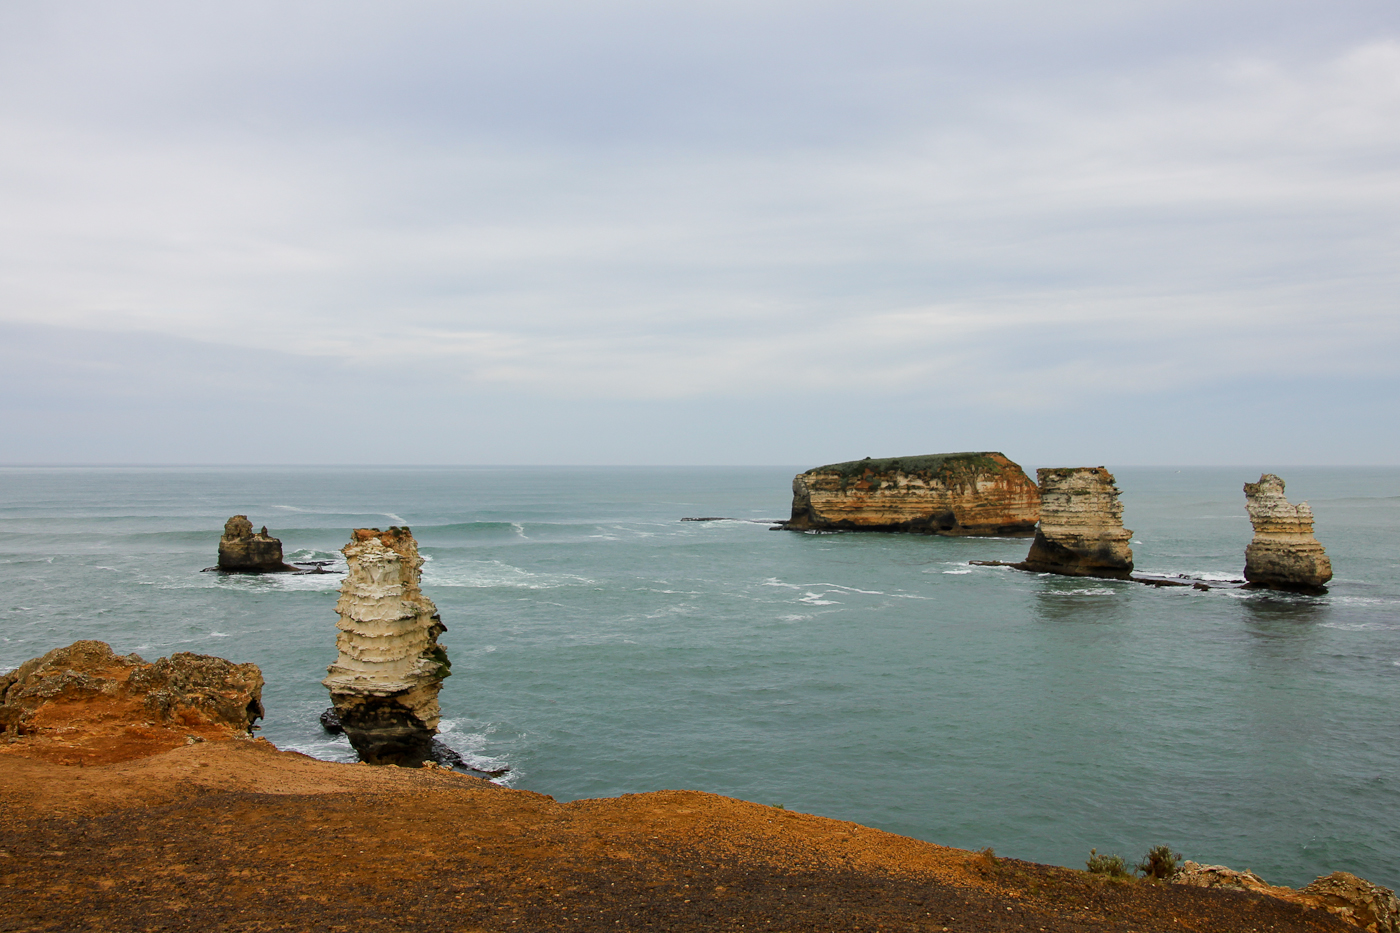 The Twelve Apostles, a stopping point along the Great Ocean Road